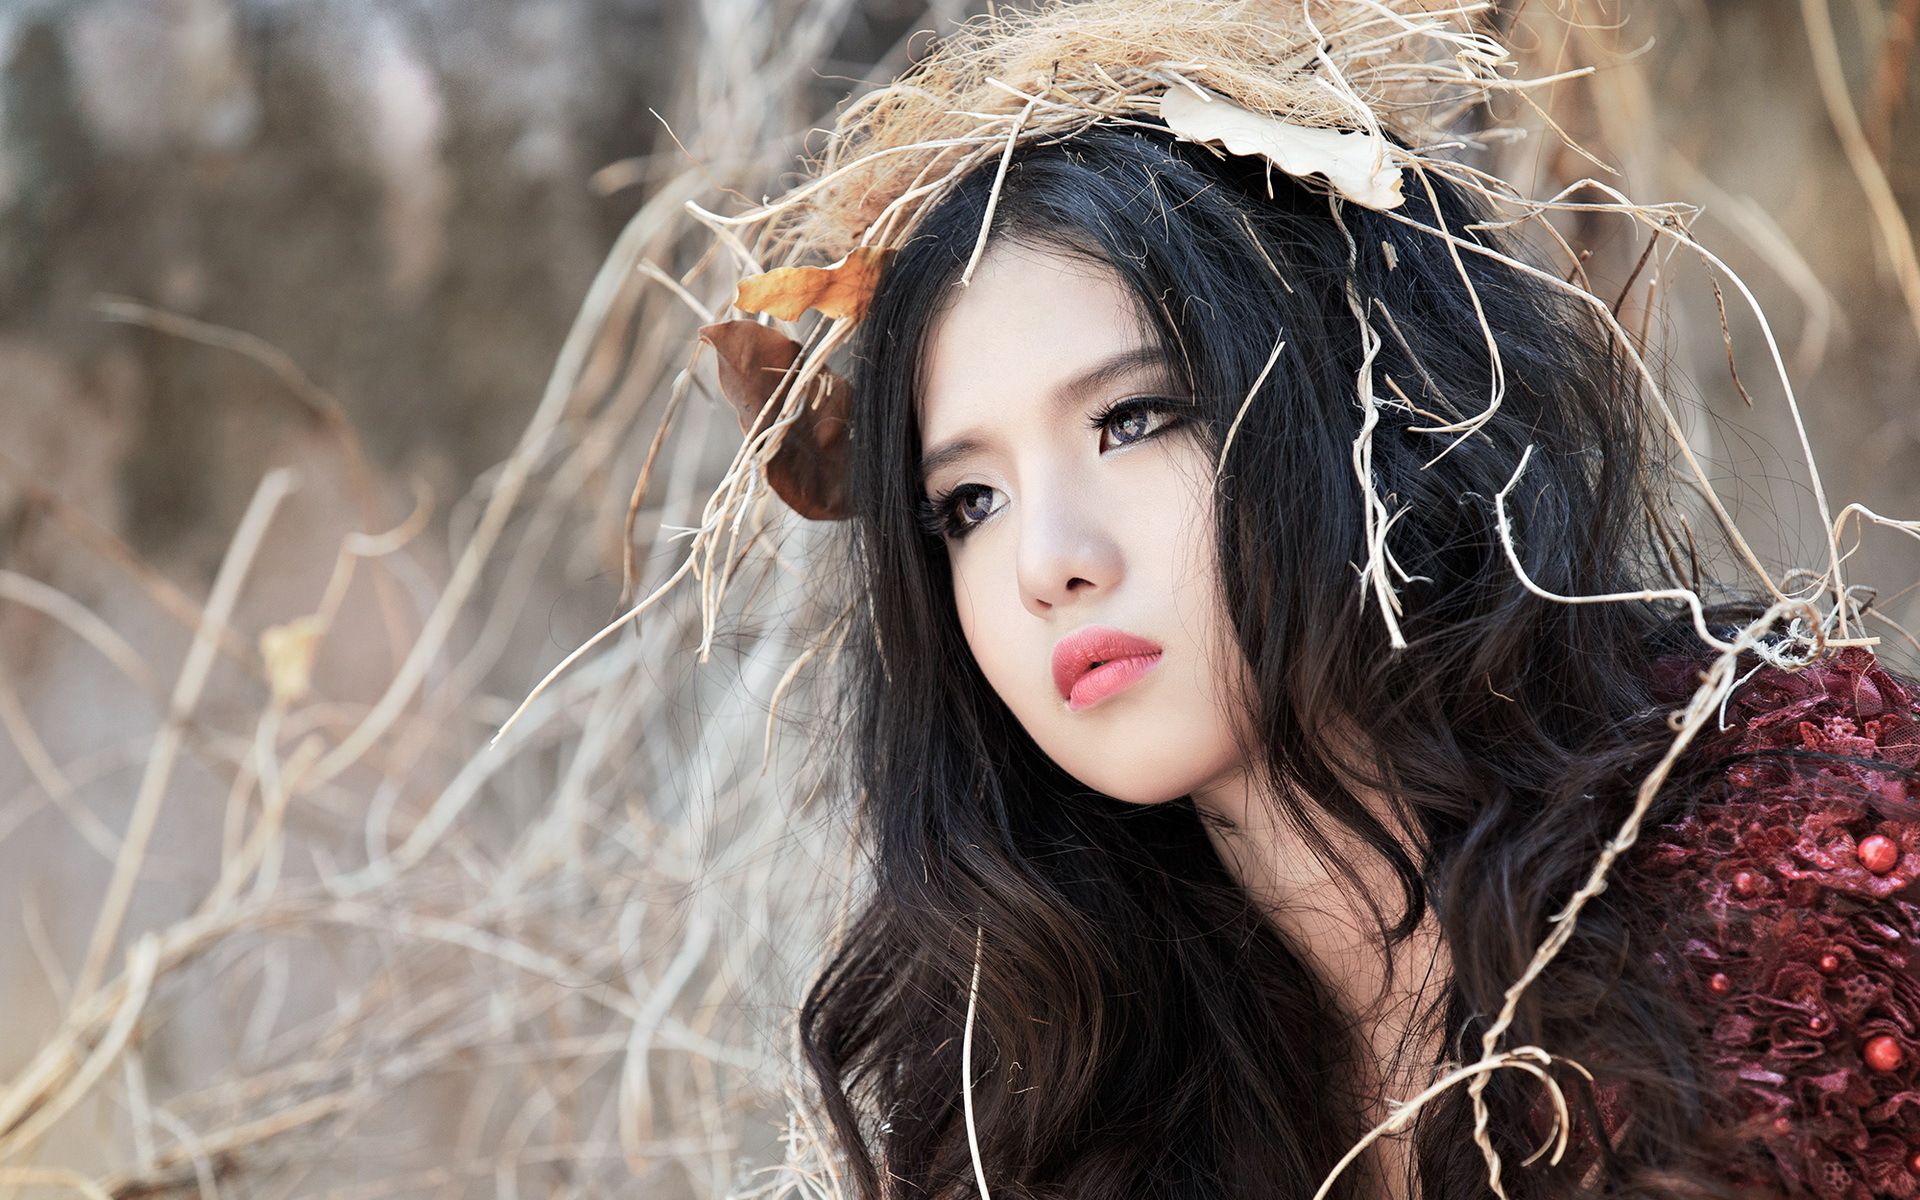 oneco asian single women International asian dating - trusted by over 25 million singles asiandating is part of the well-established cupid media network that operates over 30 reputable niche dating sites with a commitment to connecting singles worldwide, we bring asia to you.